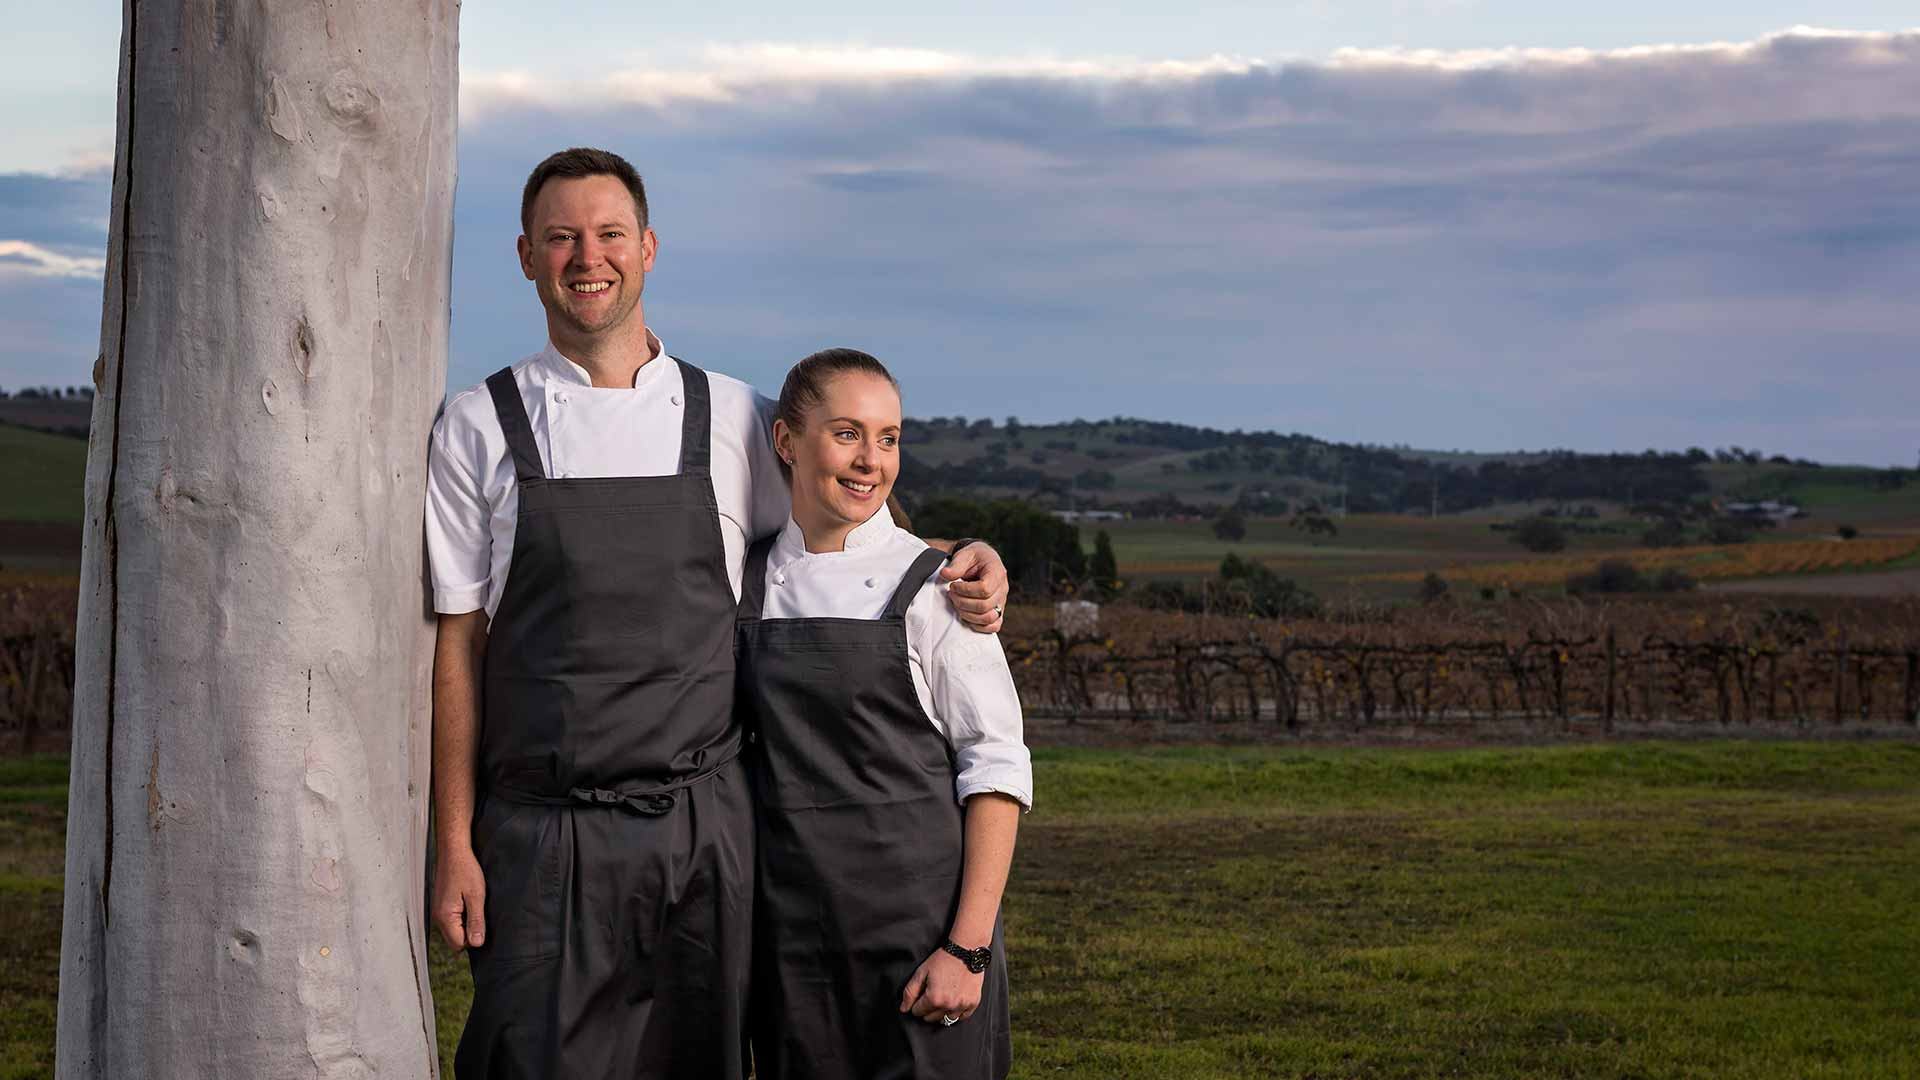 appellation---exec-chef-daniel-murphy-and-head-chef-emily-murphy---photographer-john-montesi-min